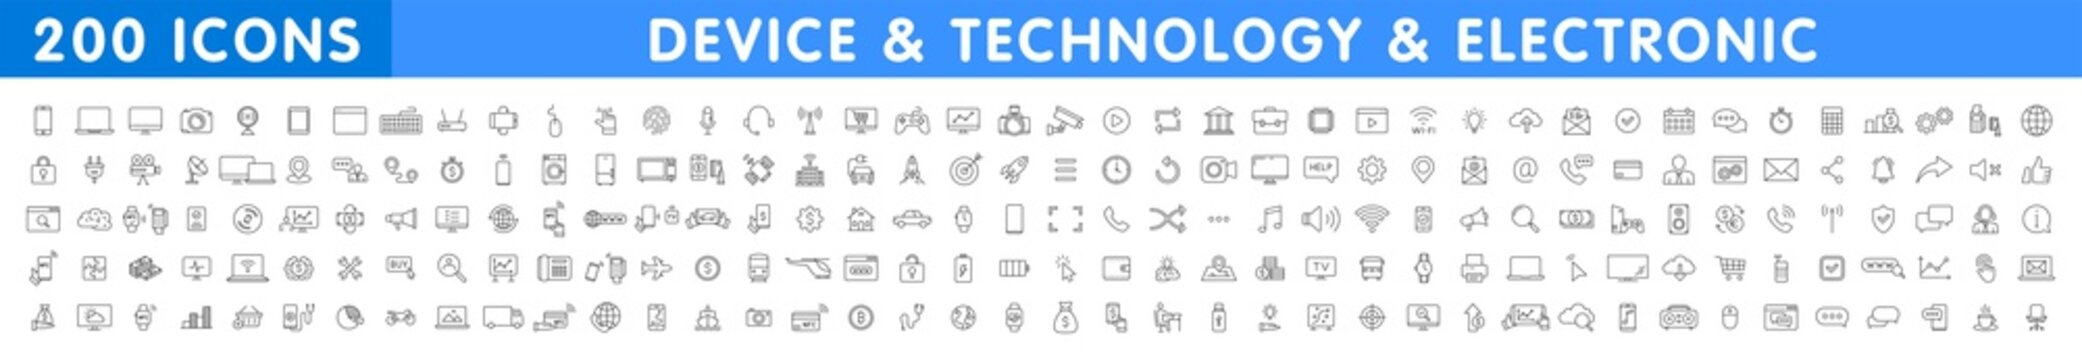 Big set of 200 Technology and Electronics and Devices web icons in line style. Device, phone, laptop, communication, smartphone, ecommercem, network, business, media. Vector illustration.